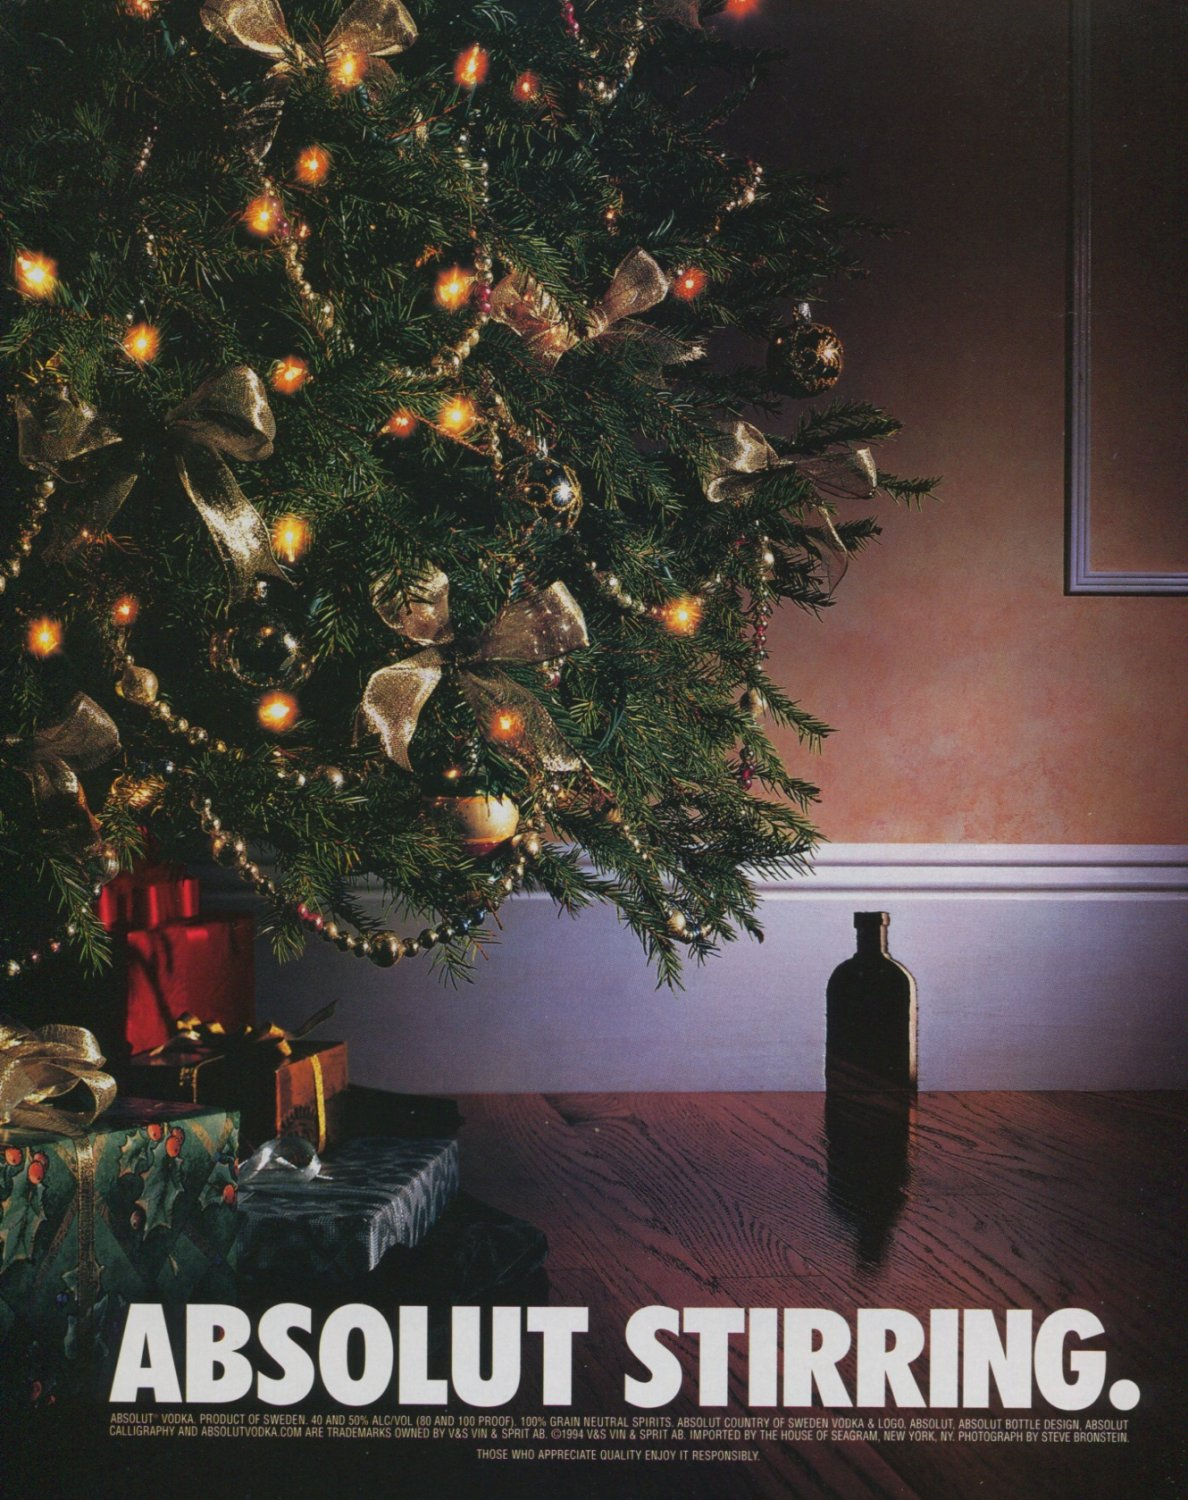 Absolut Stirring Mouse Hole Absolut Vodka Ad Advertisement Christmas Holiday Advert